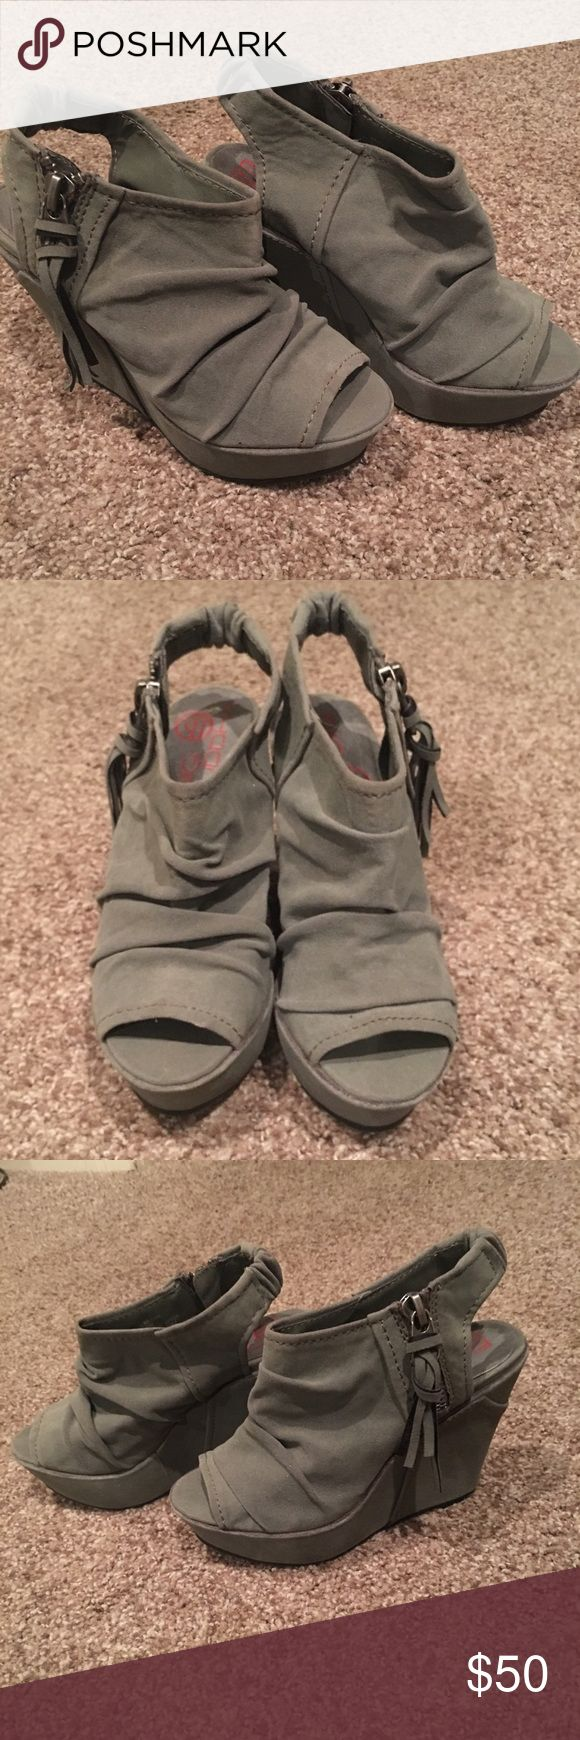 Big Buddha wedge shoes Big Buddha wedge shoes. Never worn New with tags Big Buddha Shoes Wedges